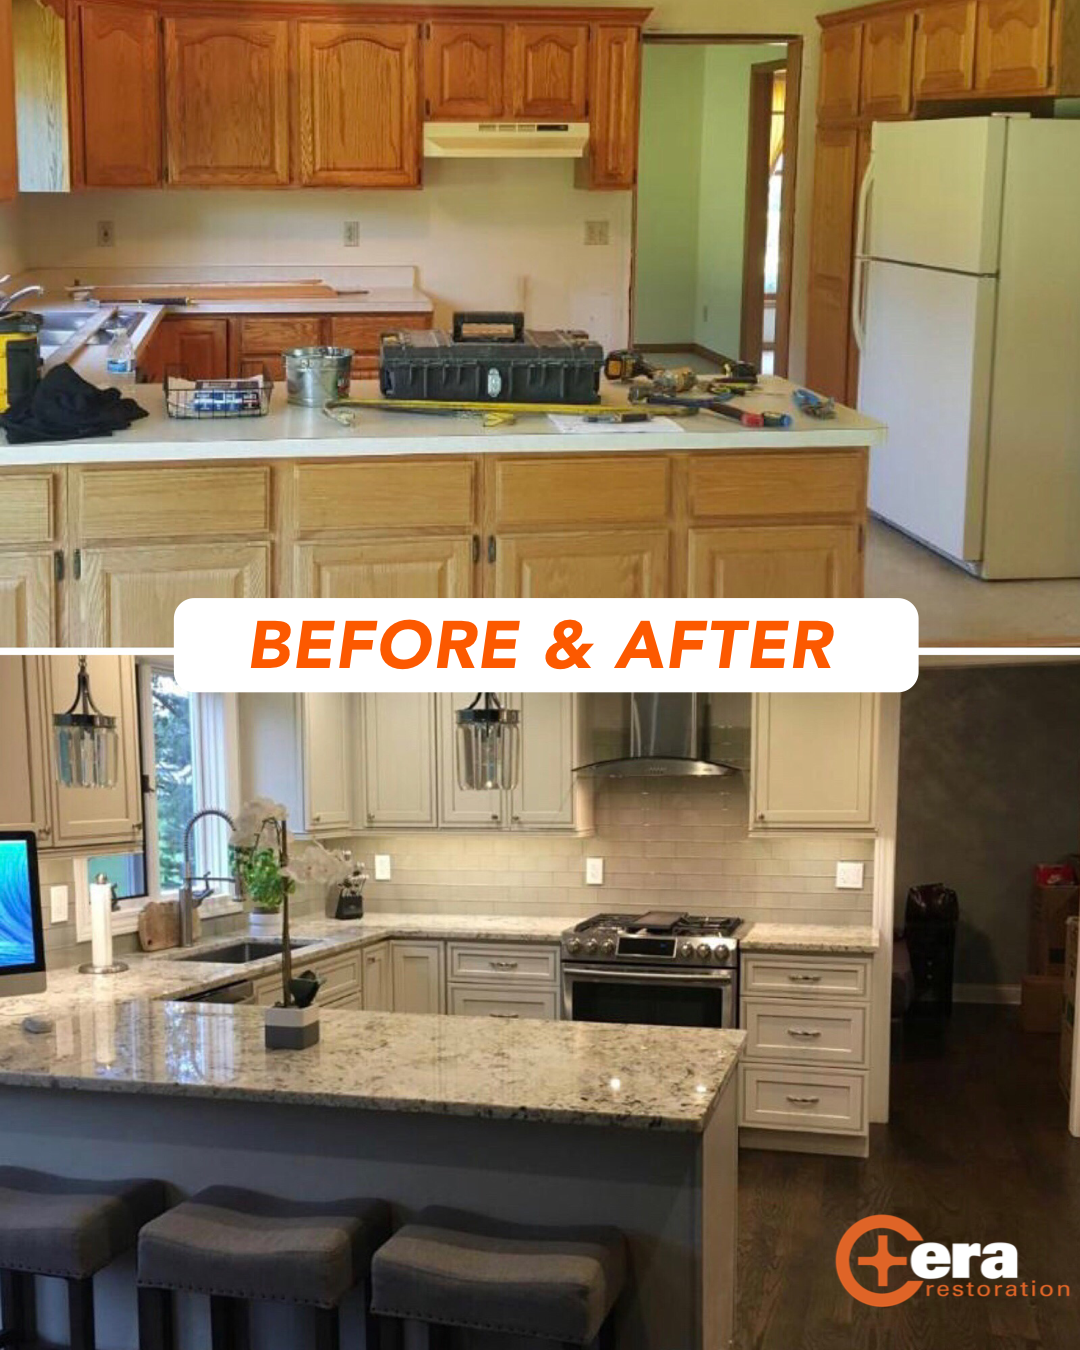 Cera Restoration Before and After photo 02